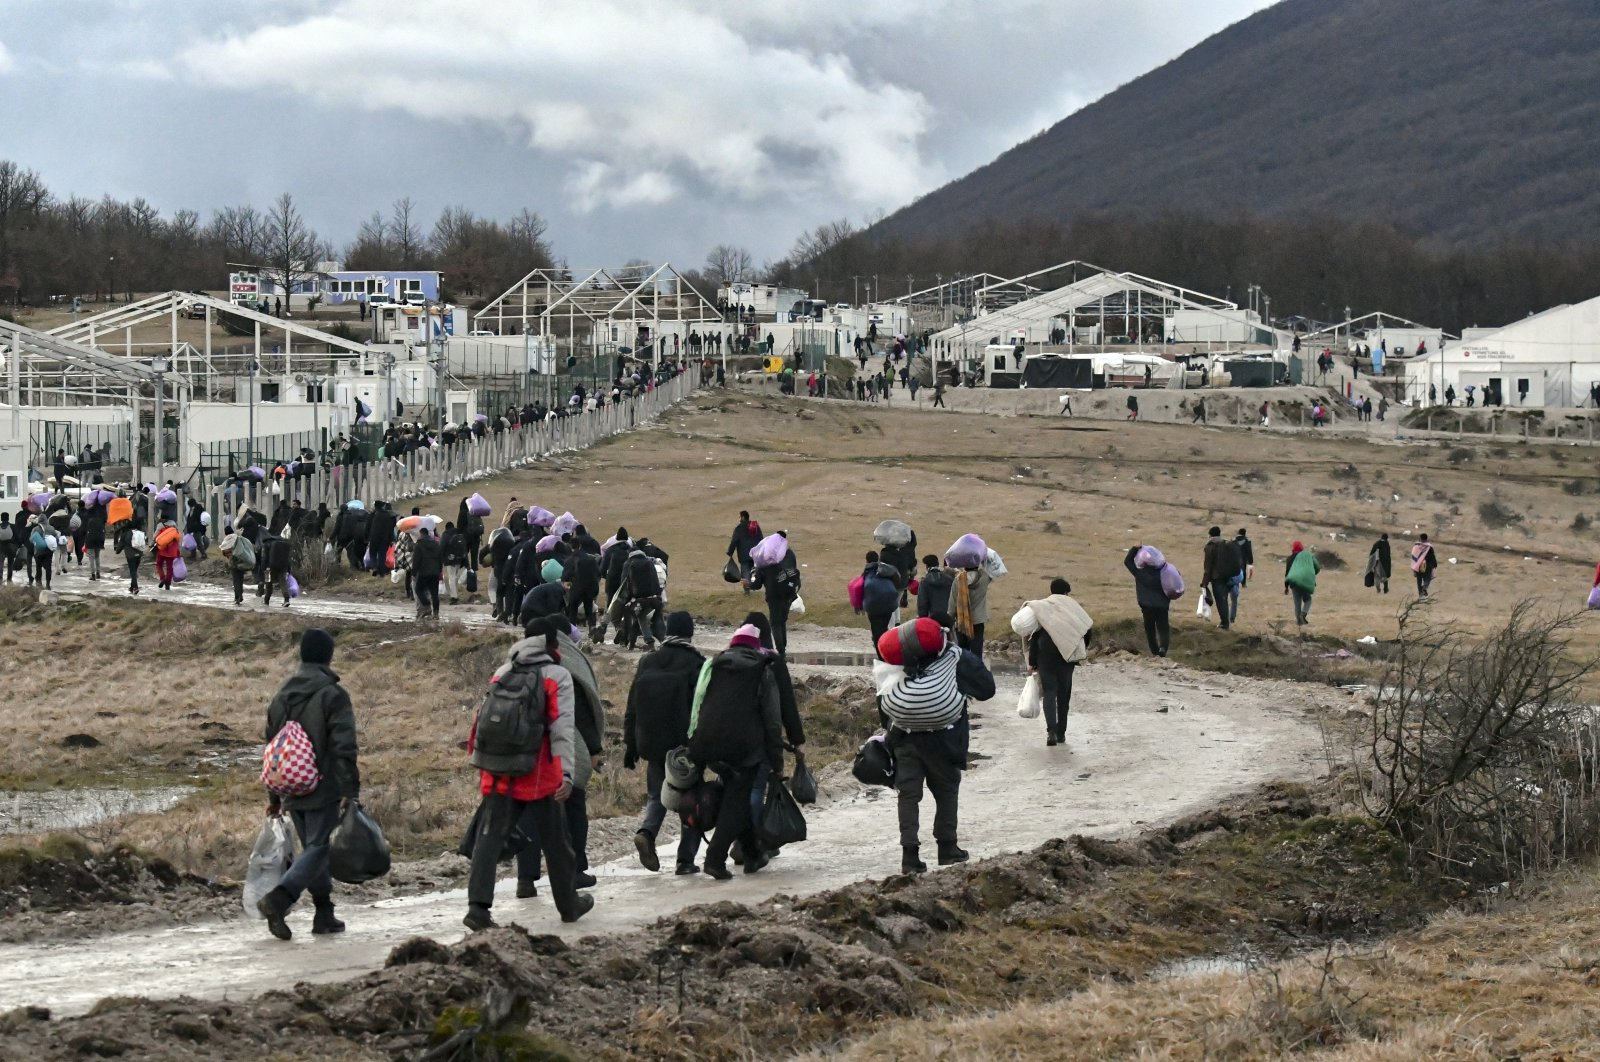 Migrants walk back to the Lipa camp after hundreds failed to be relocated from the burnt-out tent camp in the northwest of the country, outside Bihac, Bosnia-Herzegovina, Dec. 30, 2020. (AP Photo)